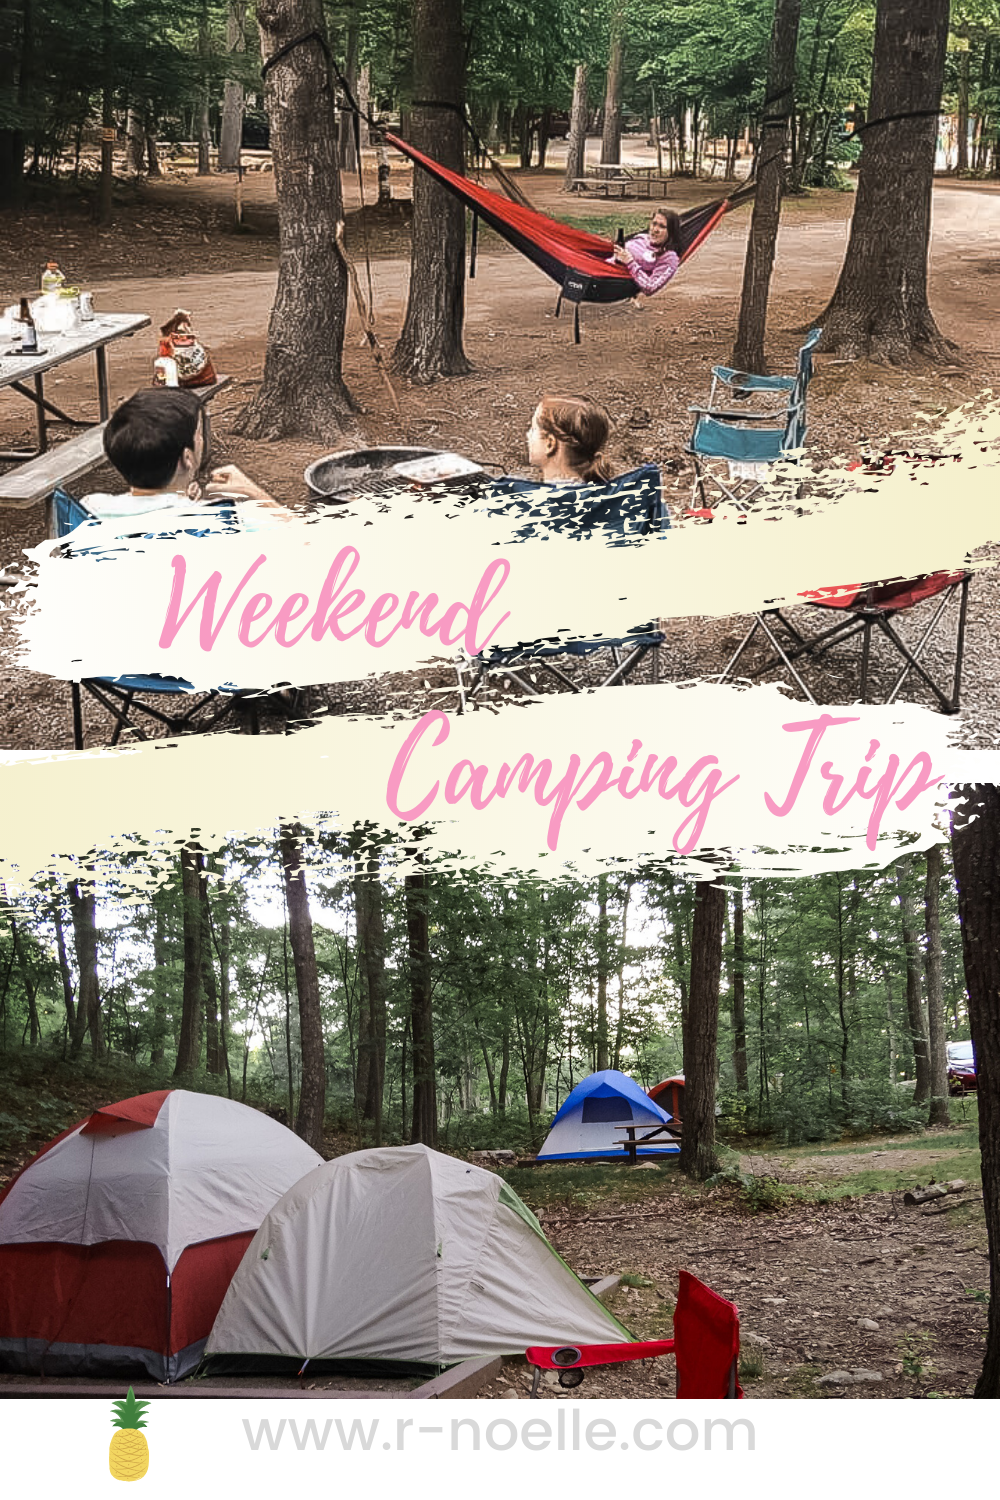 Pinterest Pin for saving a guide for weekend camping trip.